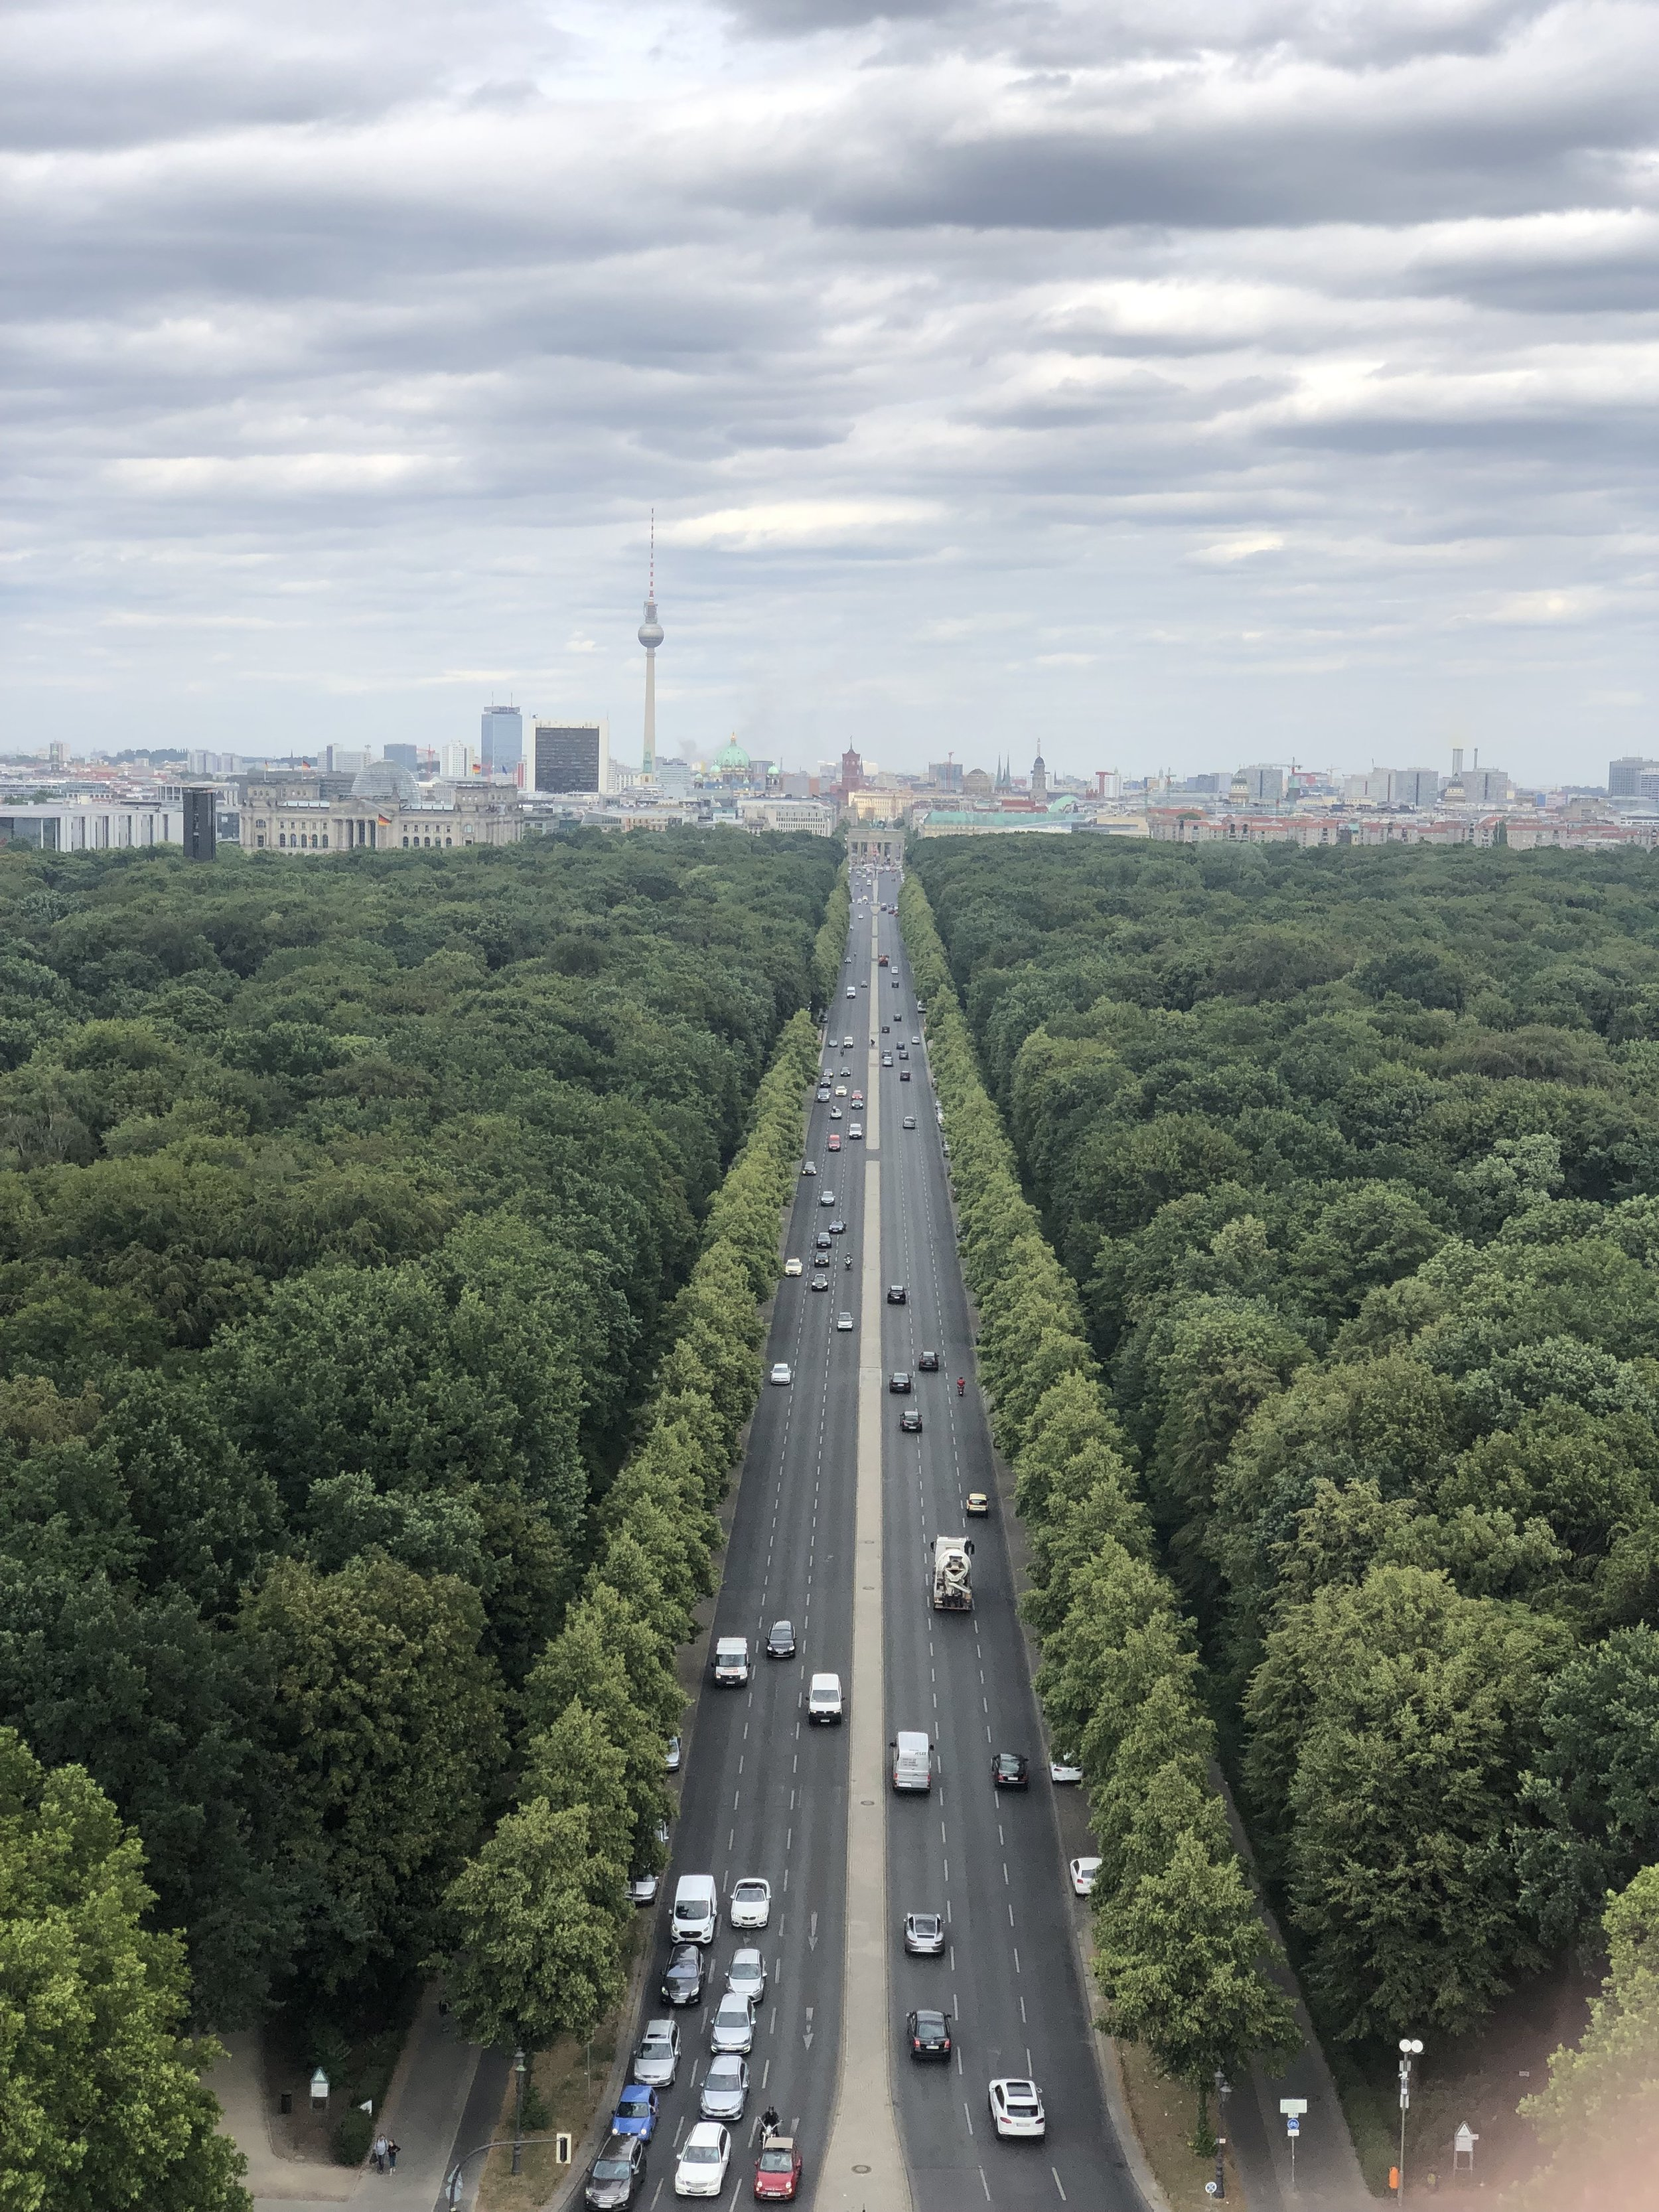 Photo take from the Victory Monument looking down the avenue toward the Brandenburg Gate and the Berlin radio/TV tower.